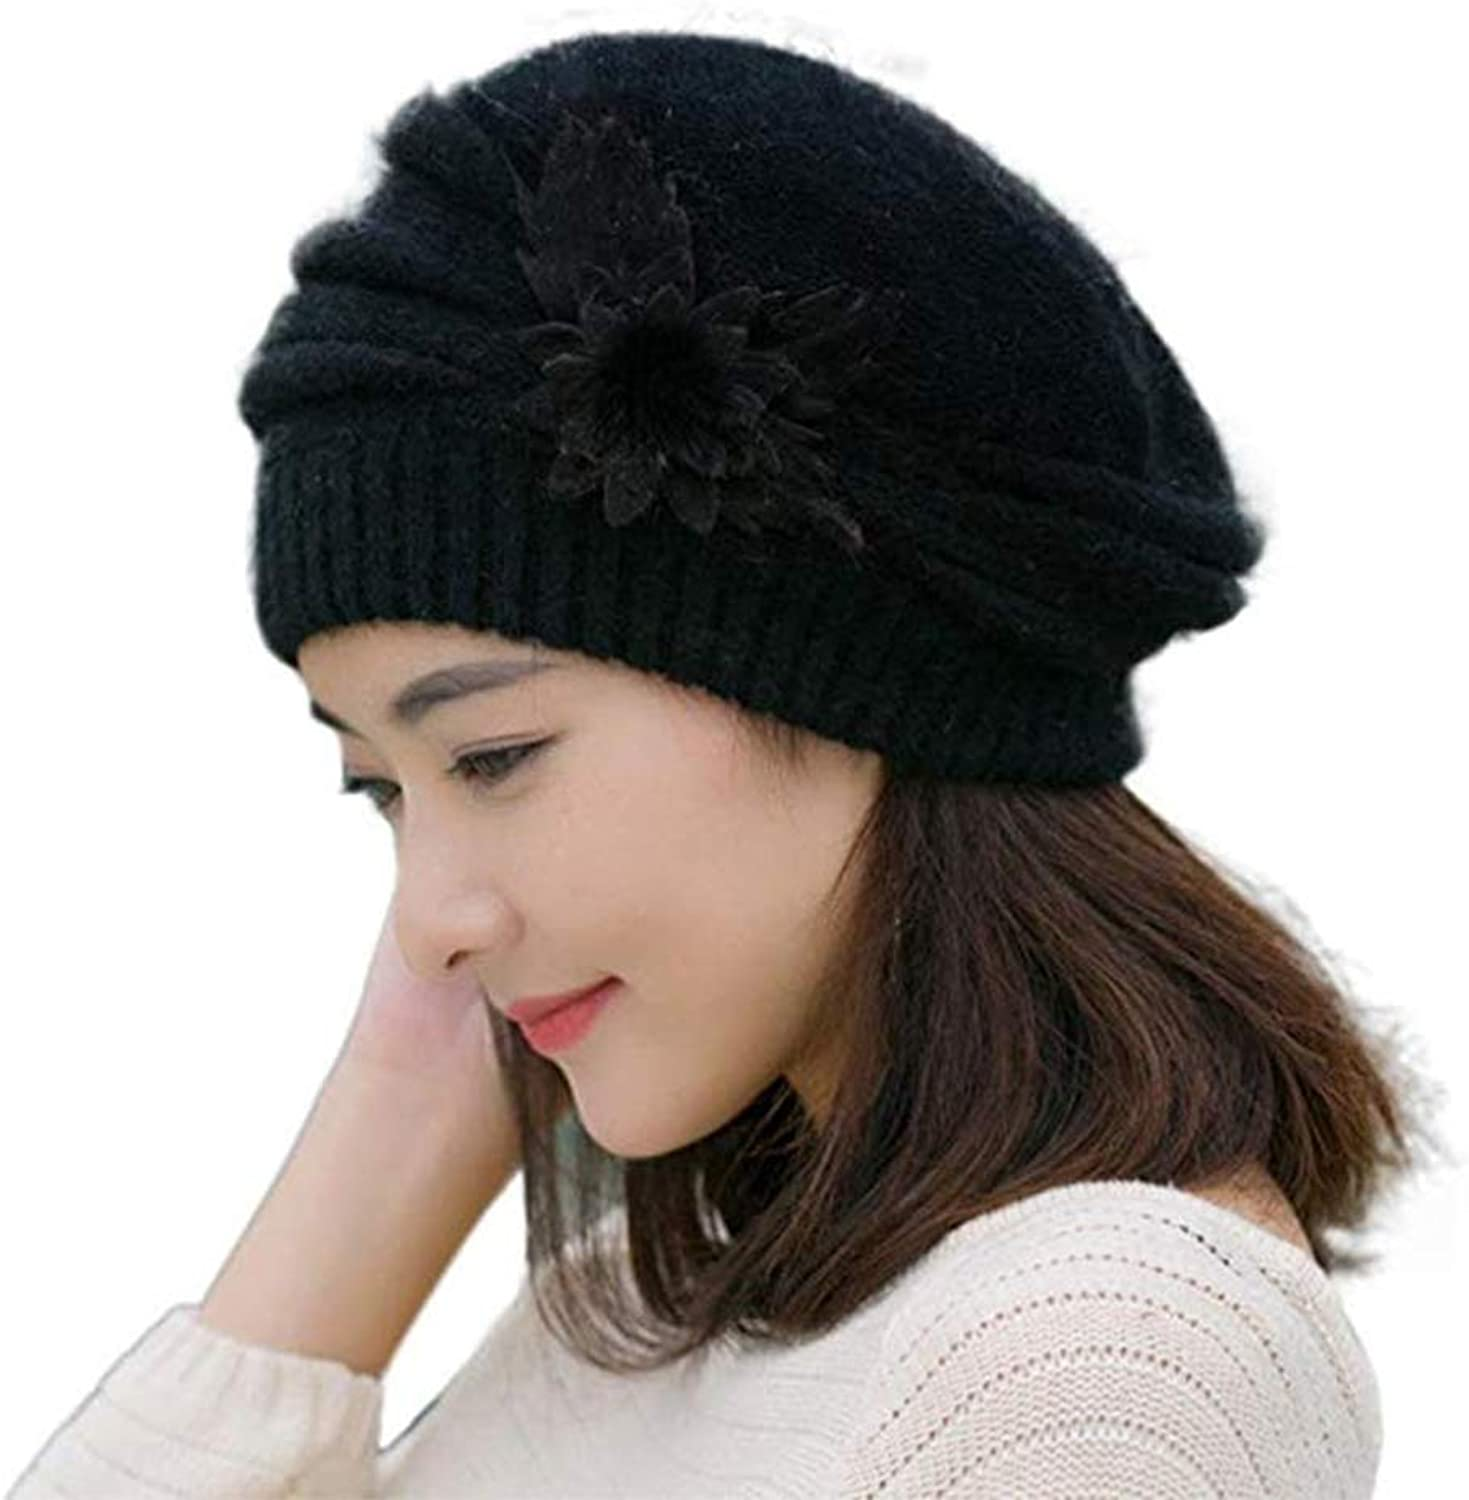 C.CUS Women's Winter Beret Hat Fleece Lined Soft Warm Beanie Cap with Flower Accent